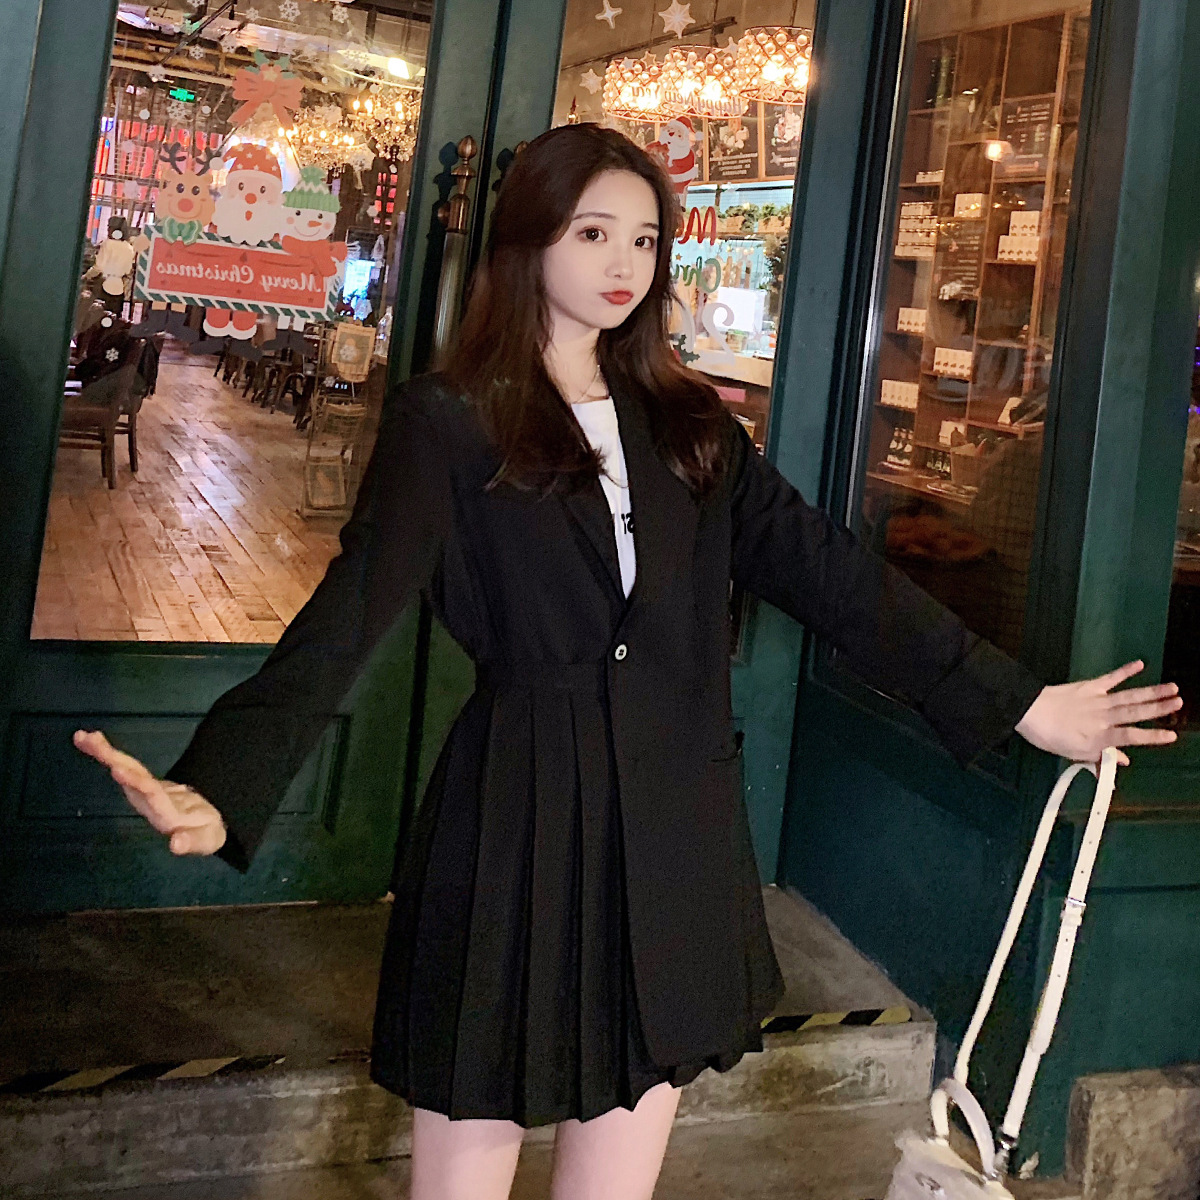 2020 Spring New Style WOMEN'S Dress Korean-style Retro Deconstructable Double Purpose Pleated Skirt Joint Suit Jacket Tops Women